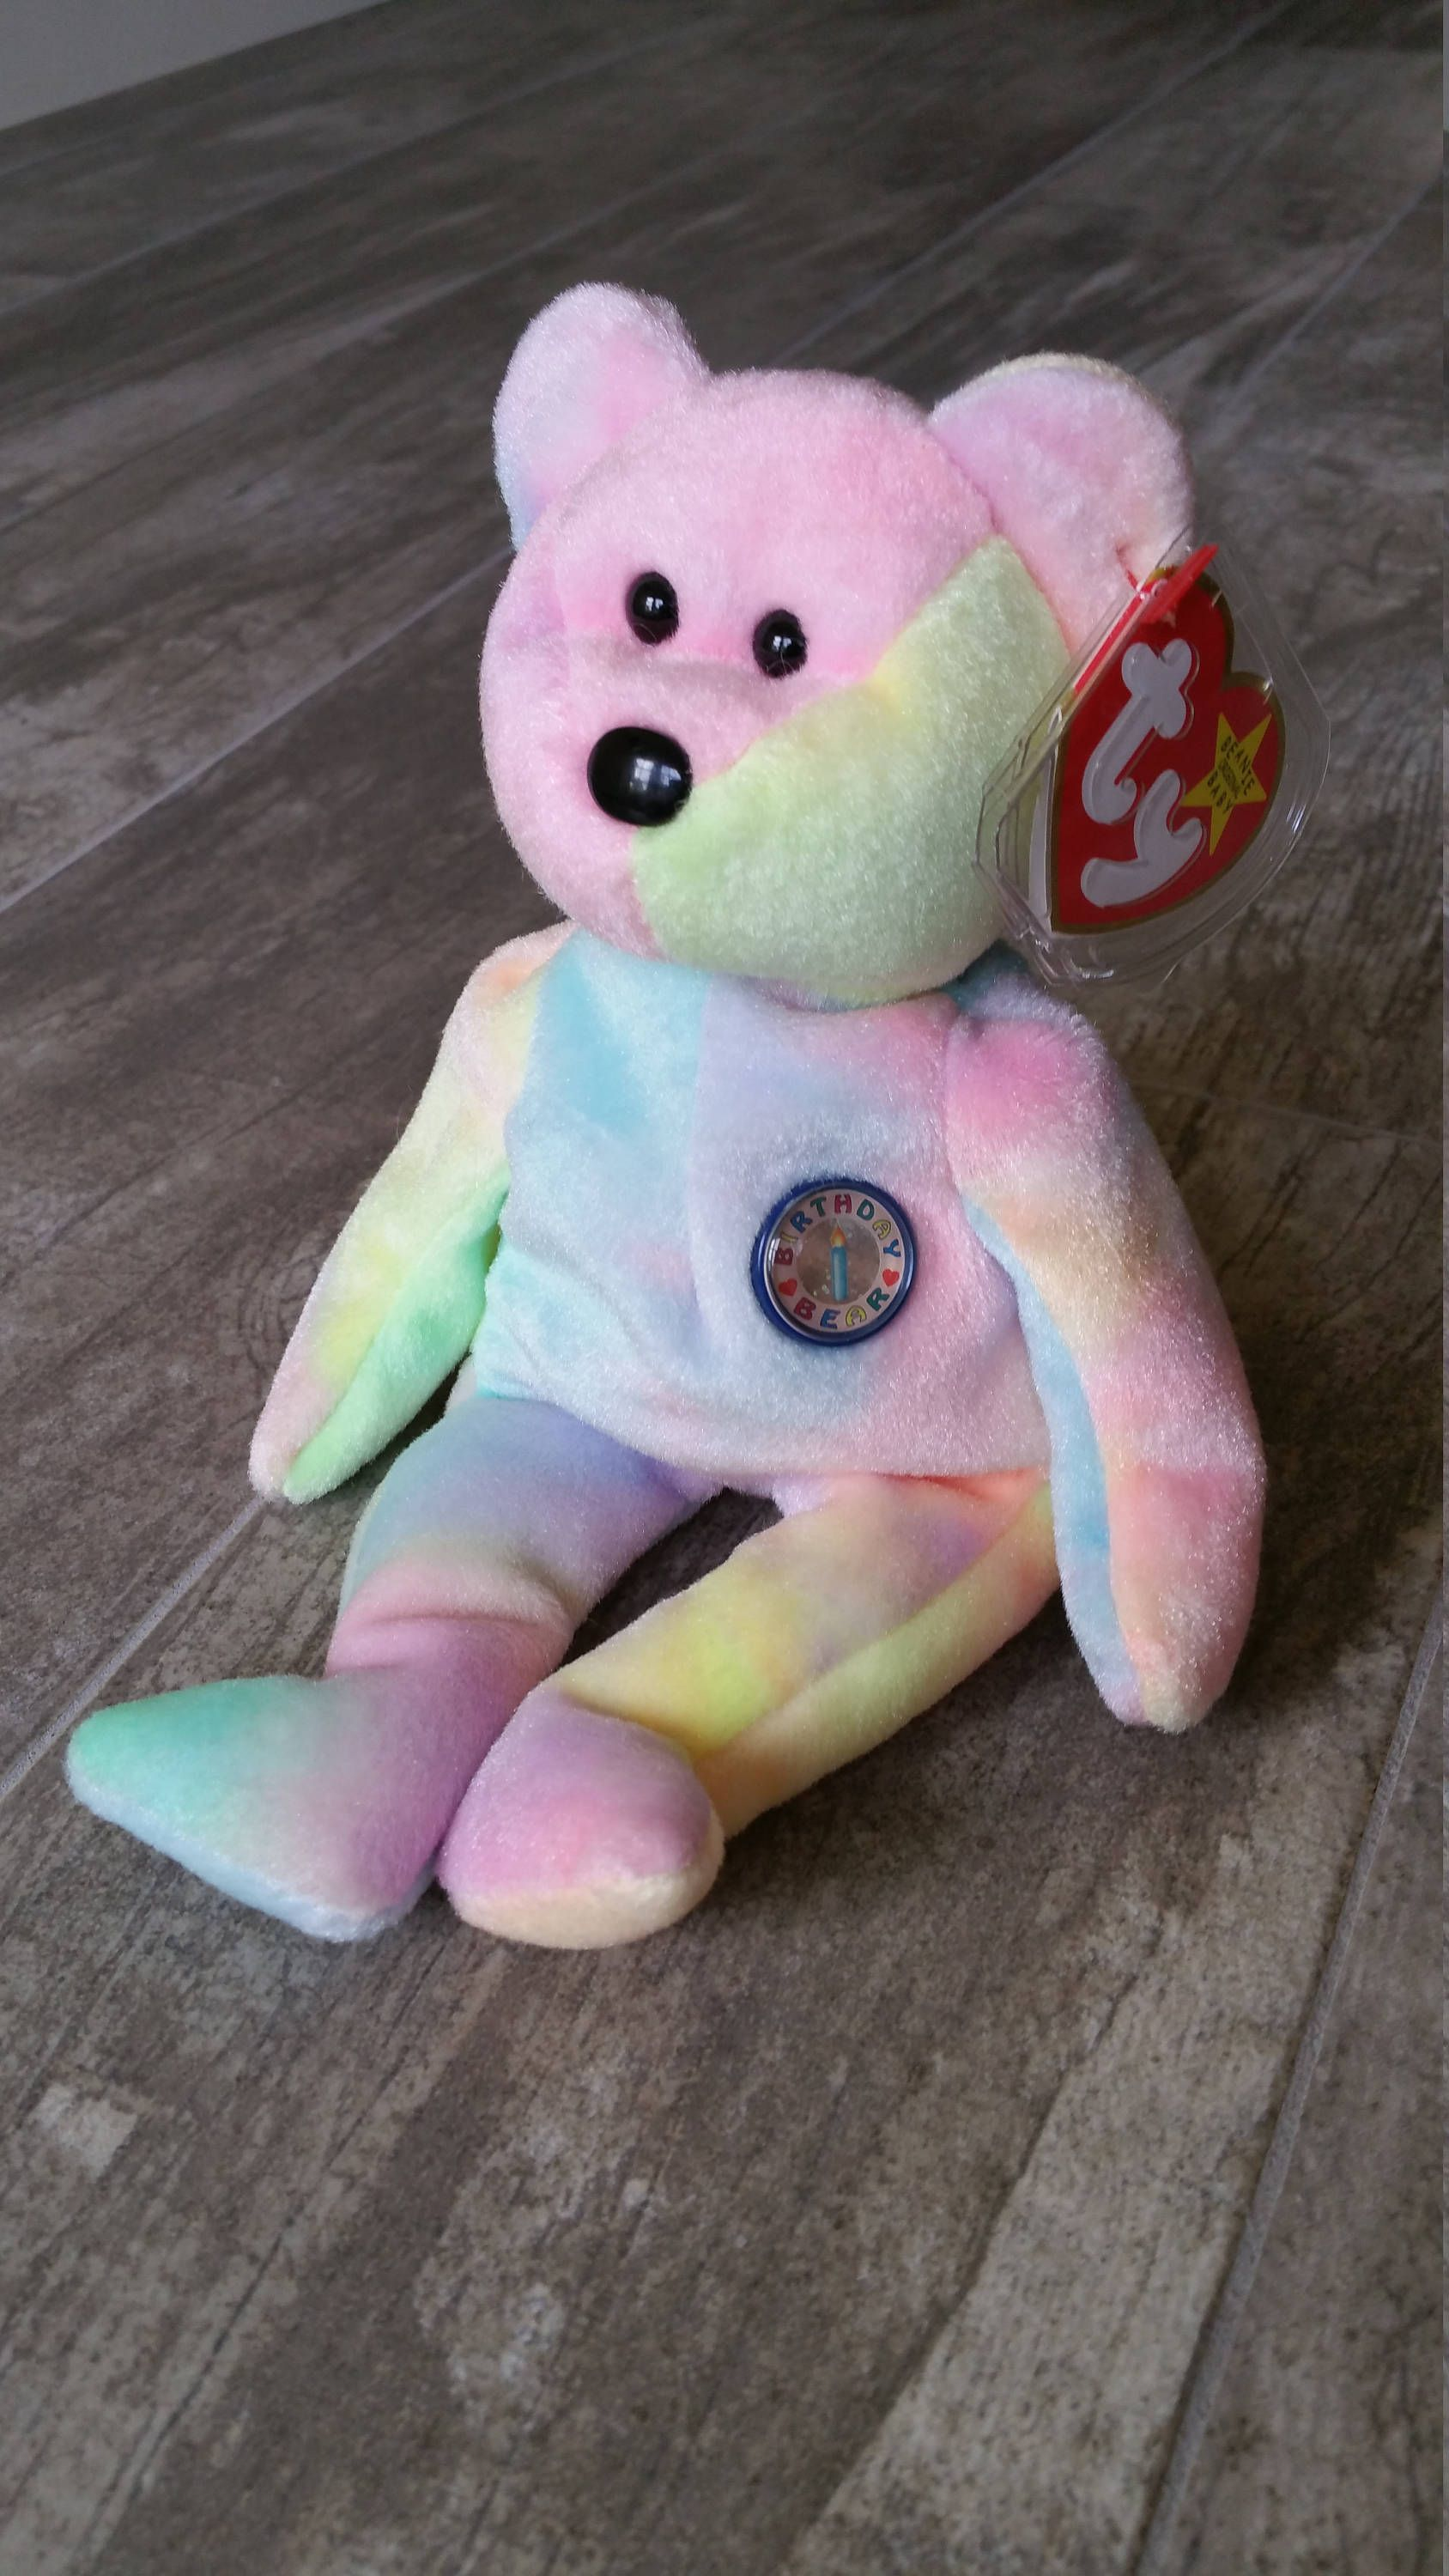 b2de7885bae TY B B Birthday Bear Tie Dyed Bday Beanie Baby RARE Original Collectible  Easter Decor Nursery Baby Shower Christmas Rainbow Sherbet Toy Gift by ...